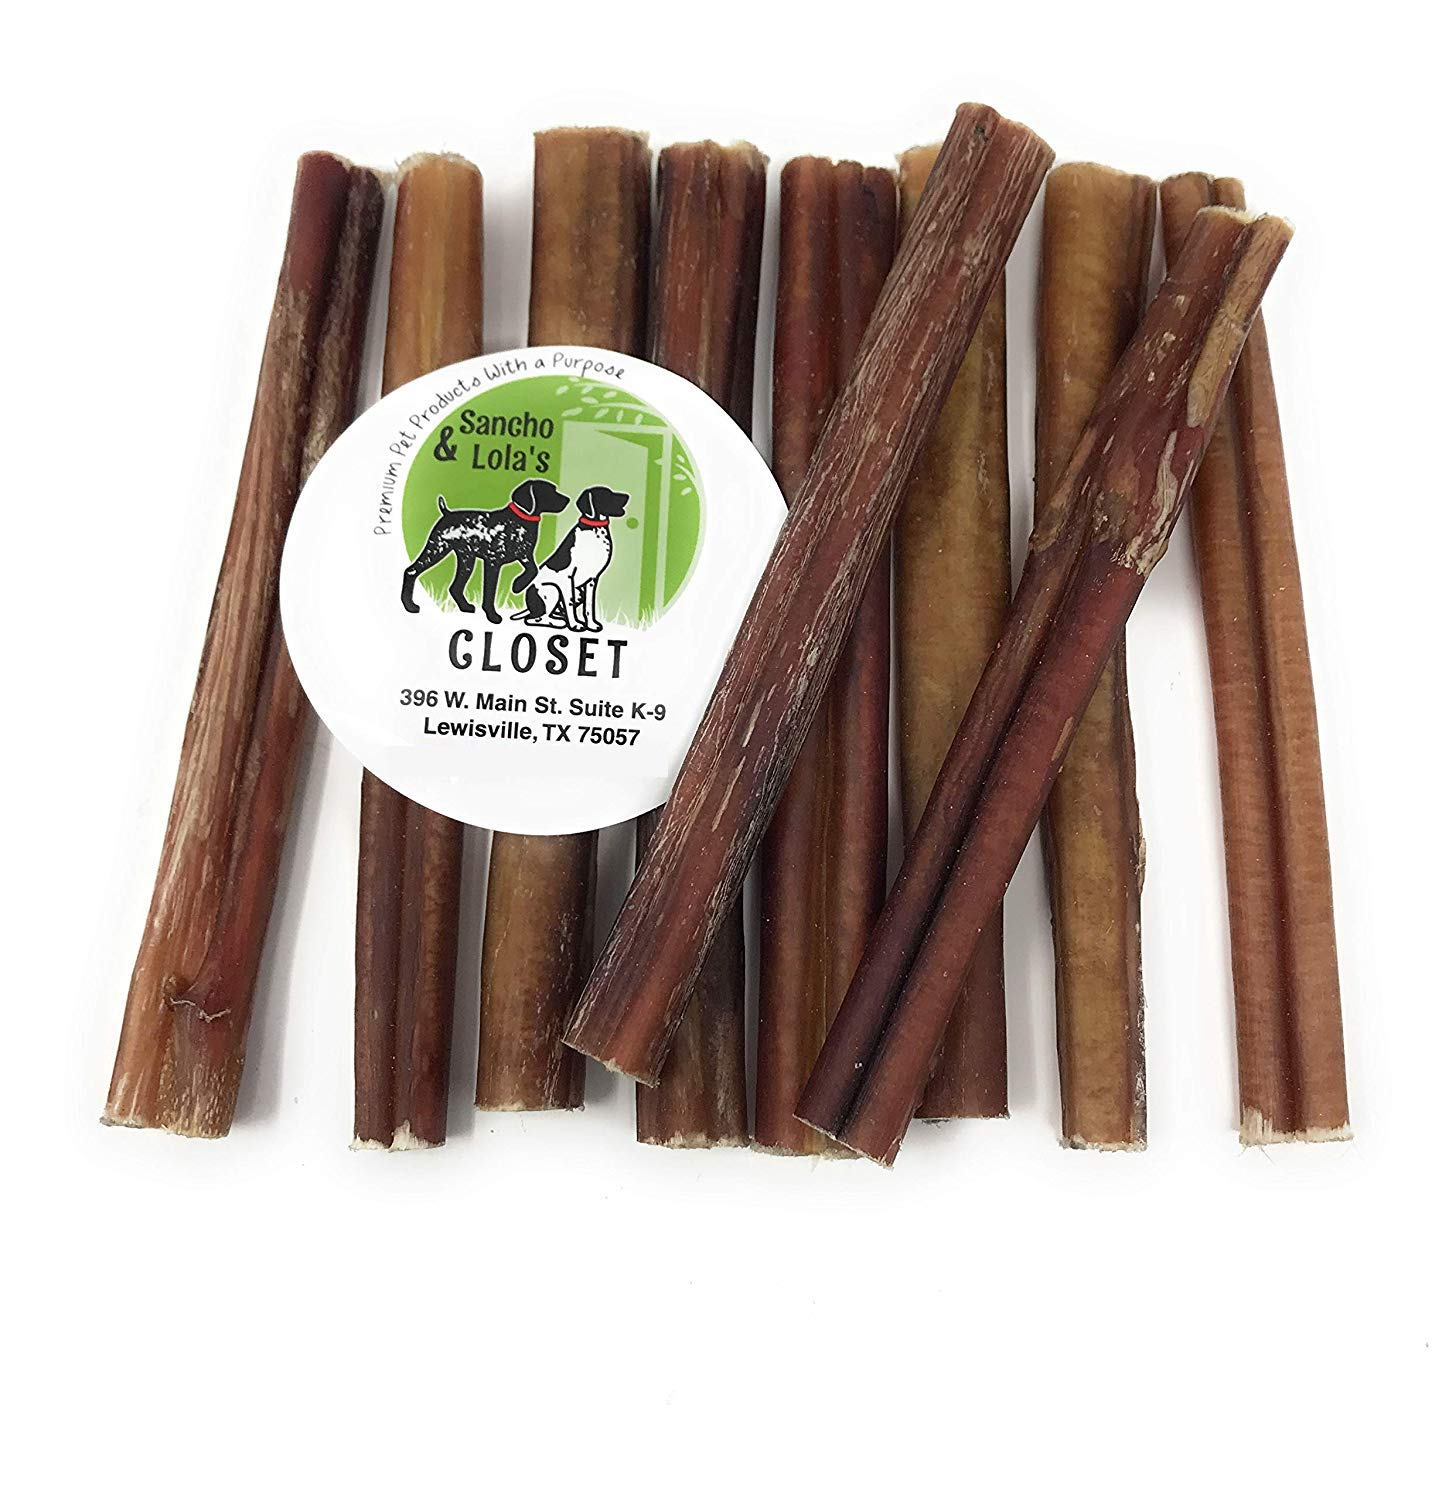 6-Inch Standard Bully Sticks for Dogs Made in USA~No Antibiotics No Growth Hormones, Grain-Free Dog Chews by Sancho & Lola's by Sancho & Lola's Closet